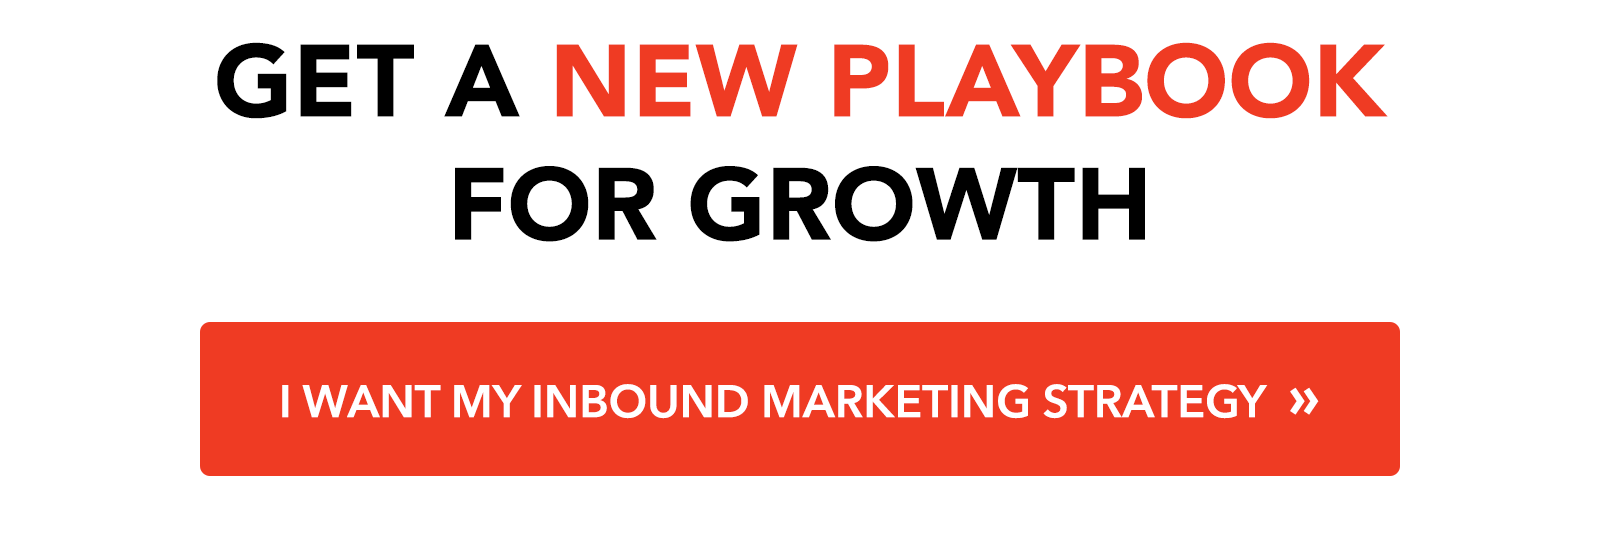 Get a new playbook for growth. Request an inbound marketing strategy consultation »